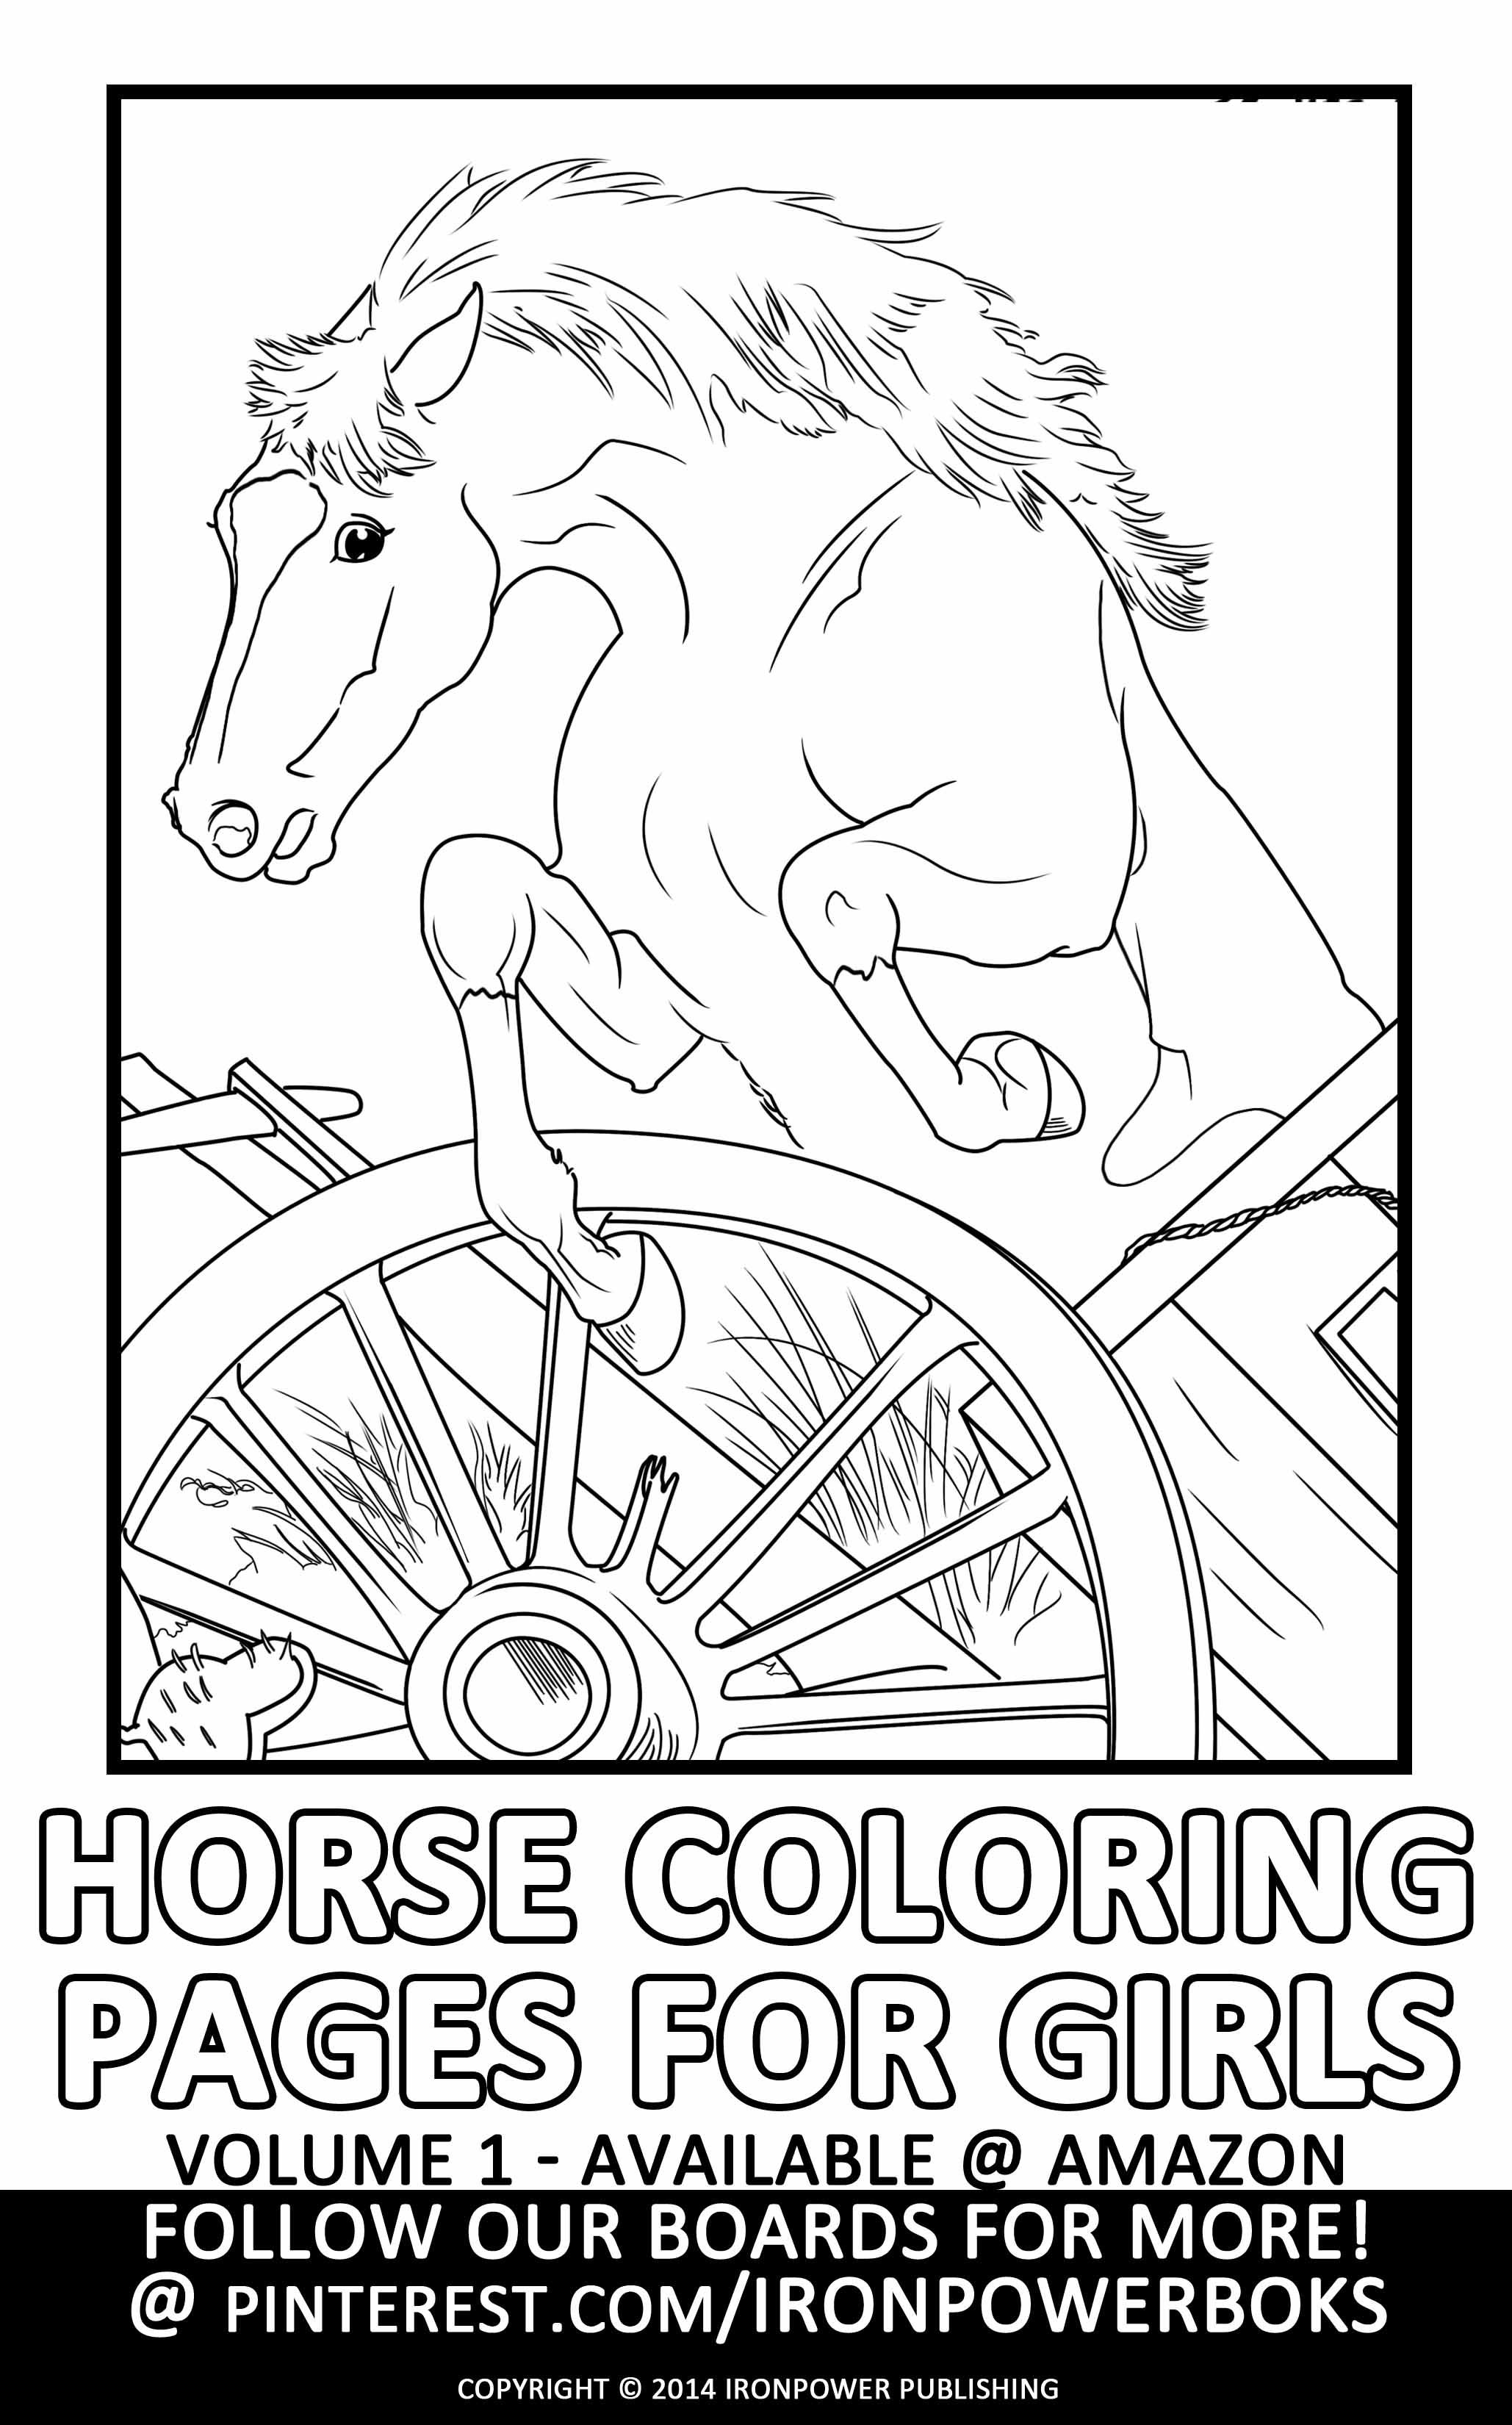 FREE Horse Coloring Pages for Girls with @ironpowerbooks ...